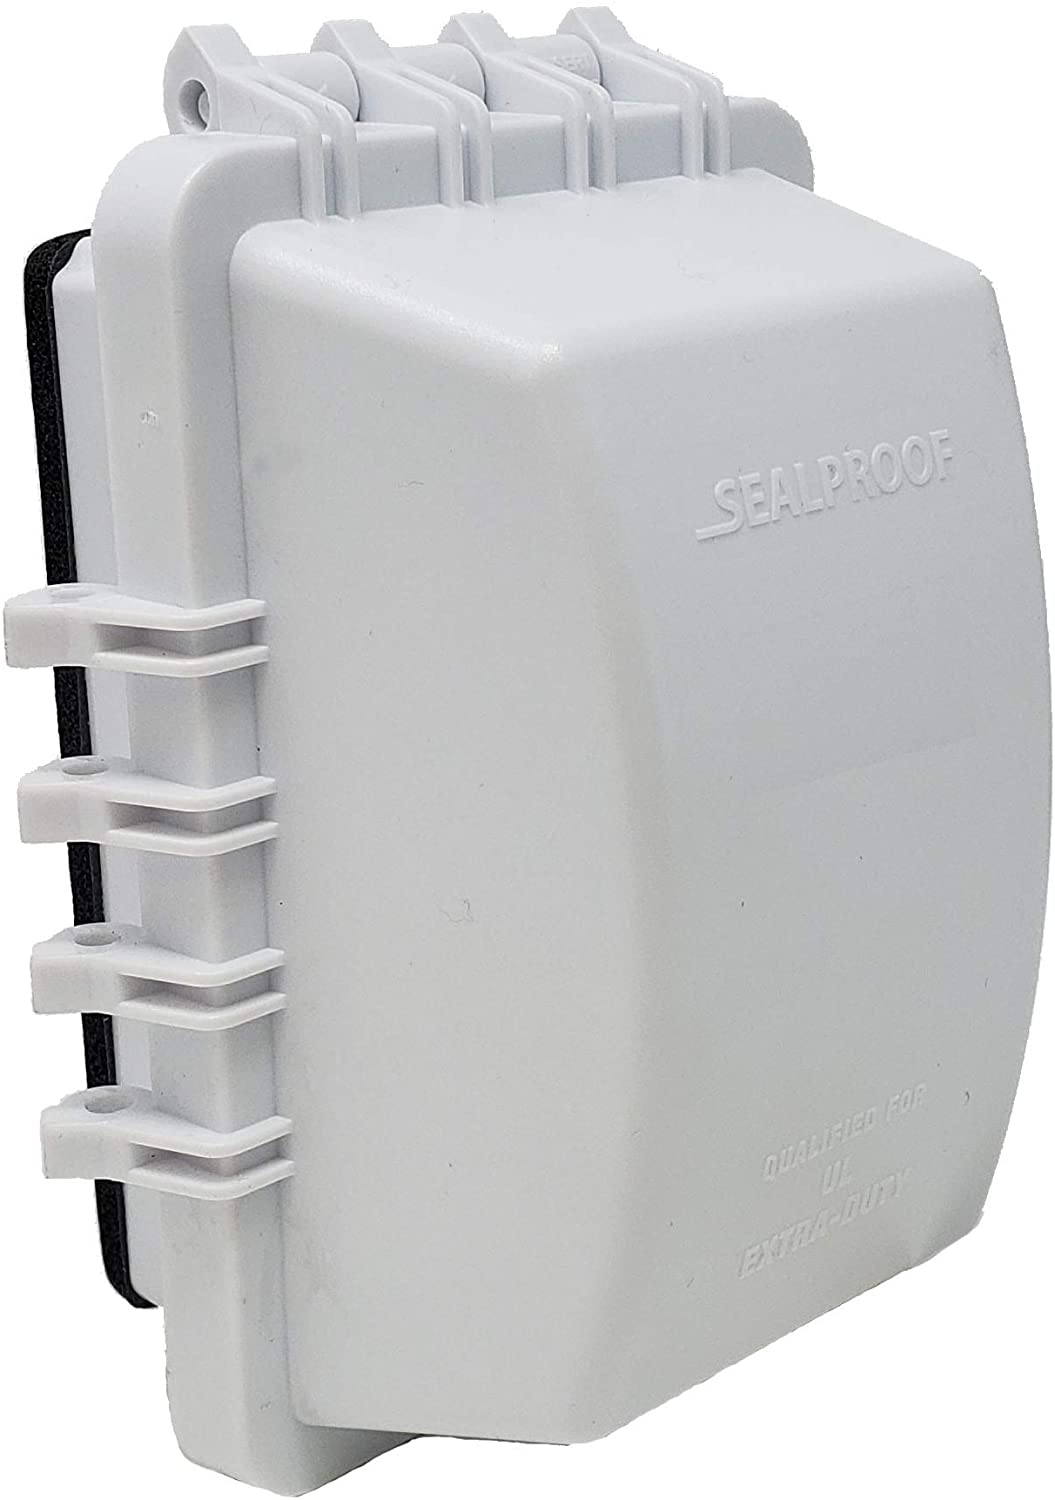 Sealproof 1-Gang Weatherproof In Use Outlet Cover   One Gang Outdoor Plug and Receptacle Protector, Lockable, UL Extra Duty Compliant, 18 Configurations